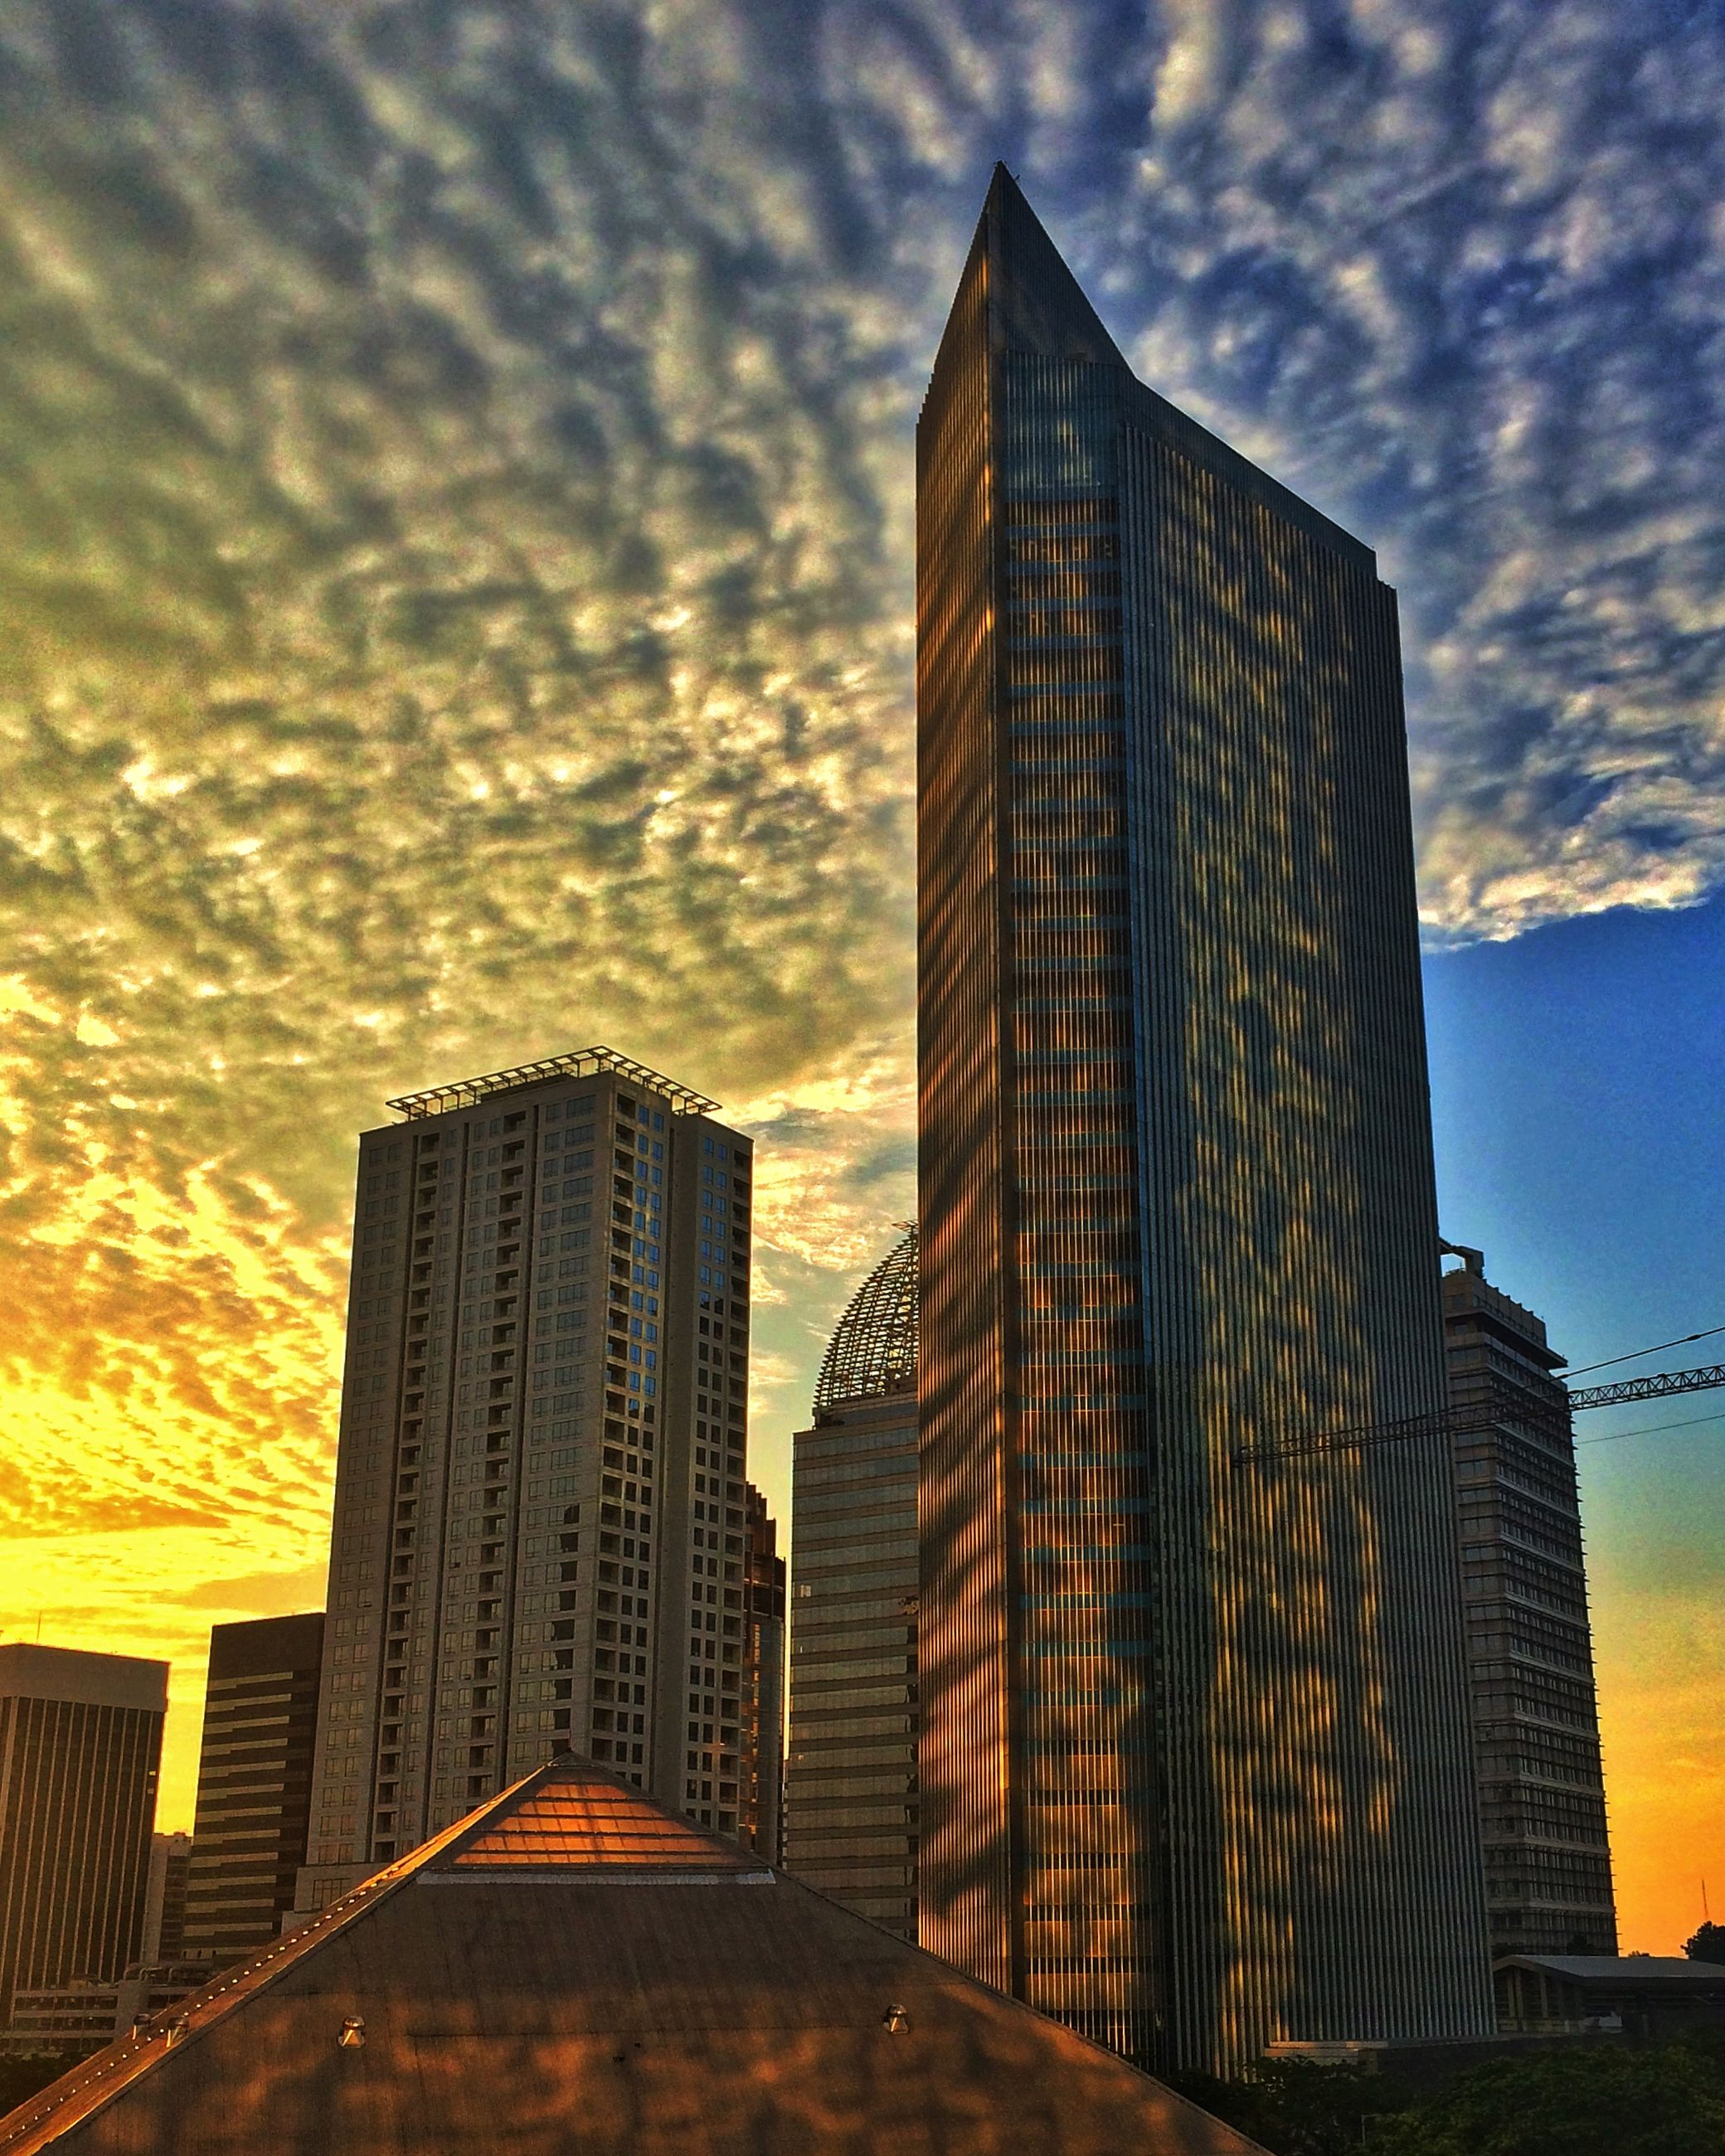 architecture, building exterior, built structure, skyscraper, modern, sky, office building, city, tall - high, low angle view, cloud - sky, tower, cloudy, cloud, building, sunset, tall, outdoors, no people, city life